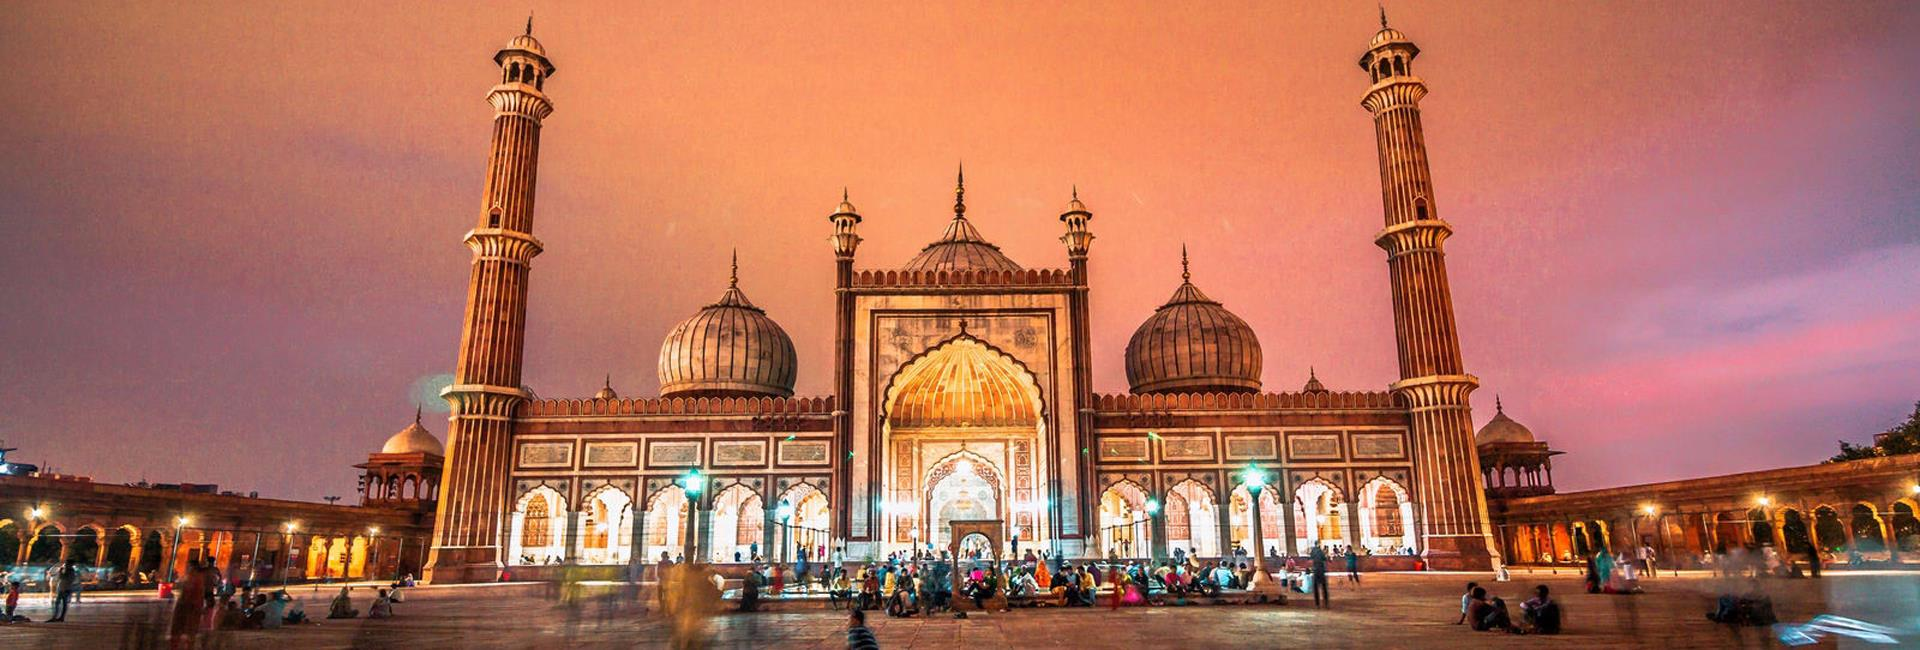 Delhi Tour Packages in India